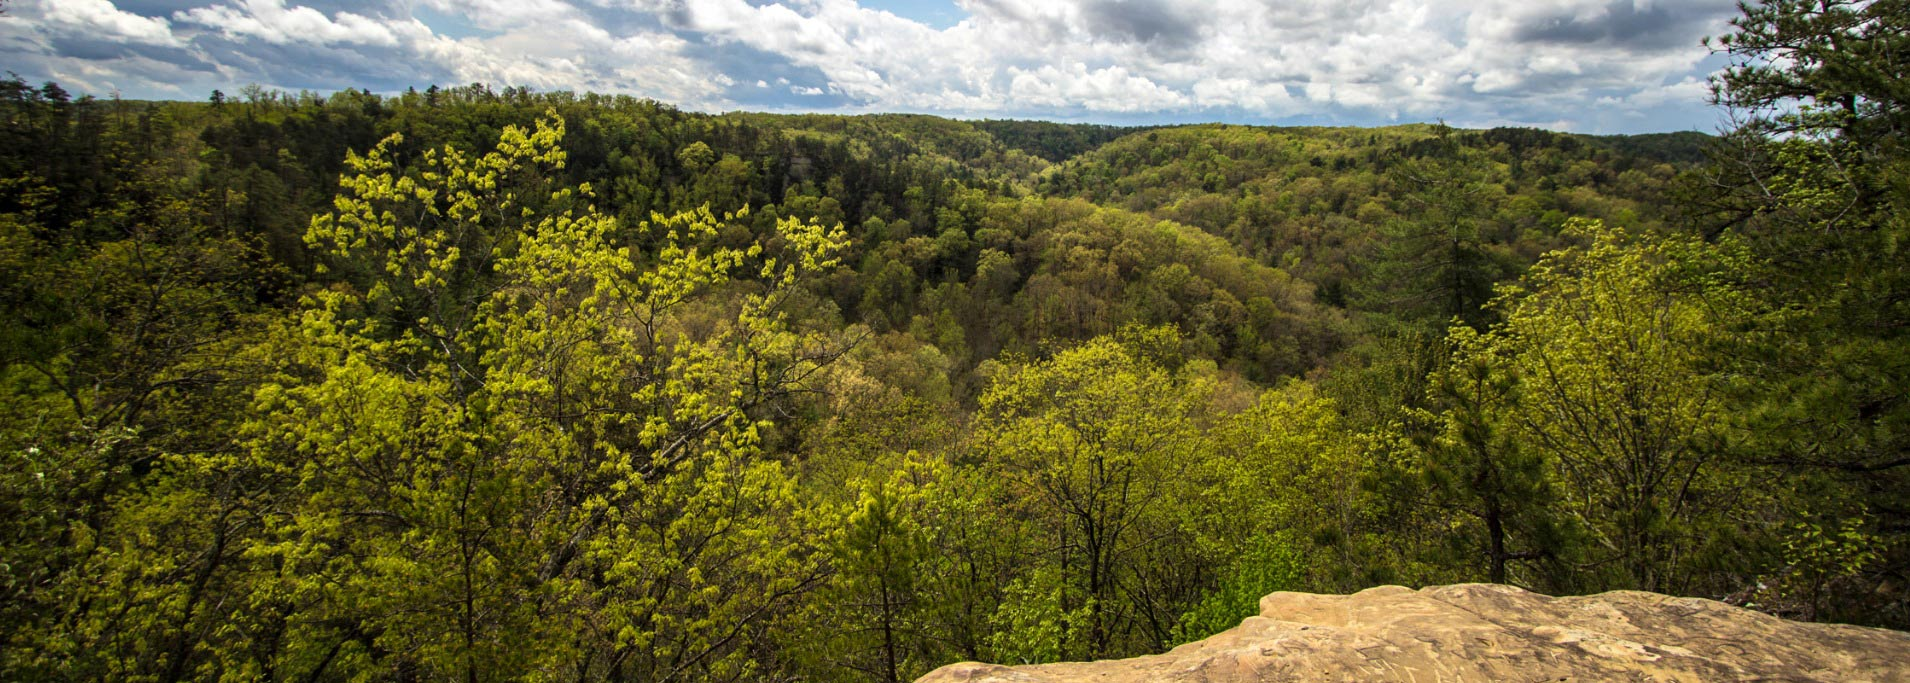 panoramic-view-from-the-natural-bridge-in-kentucky-picture-id524911810